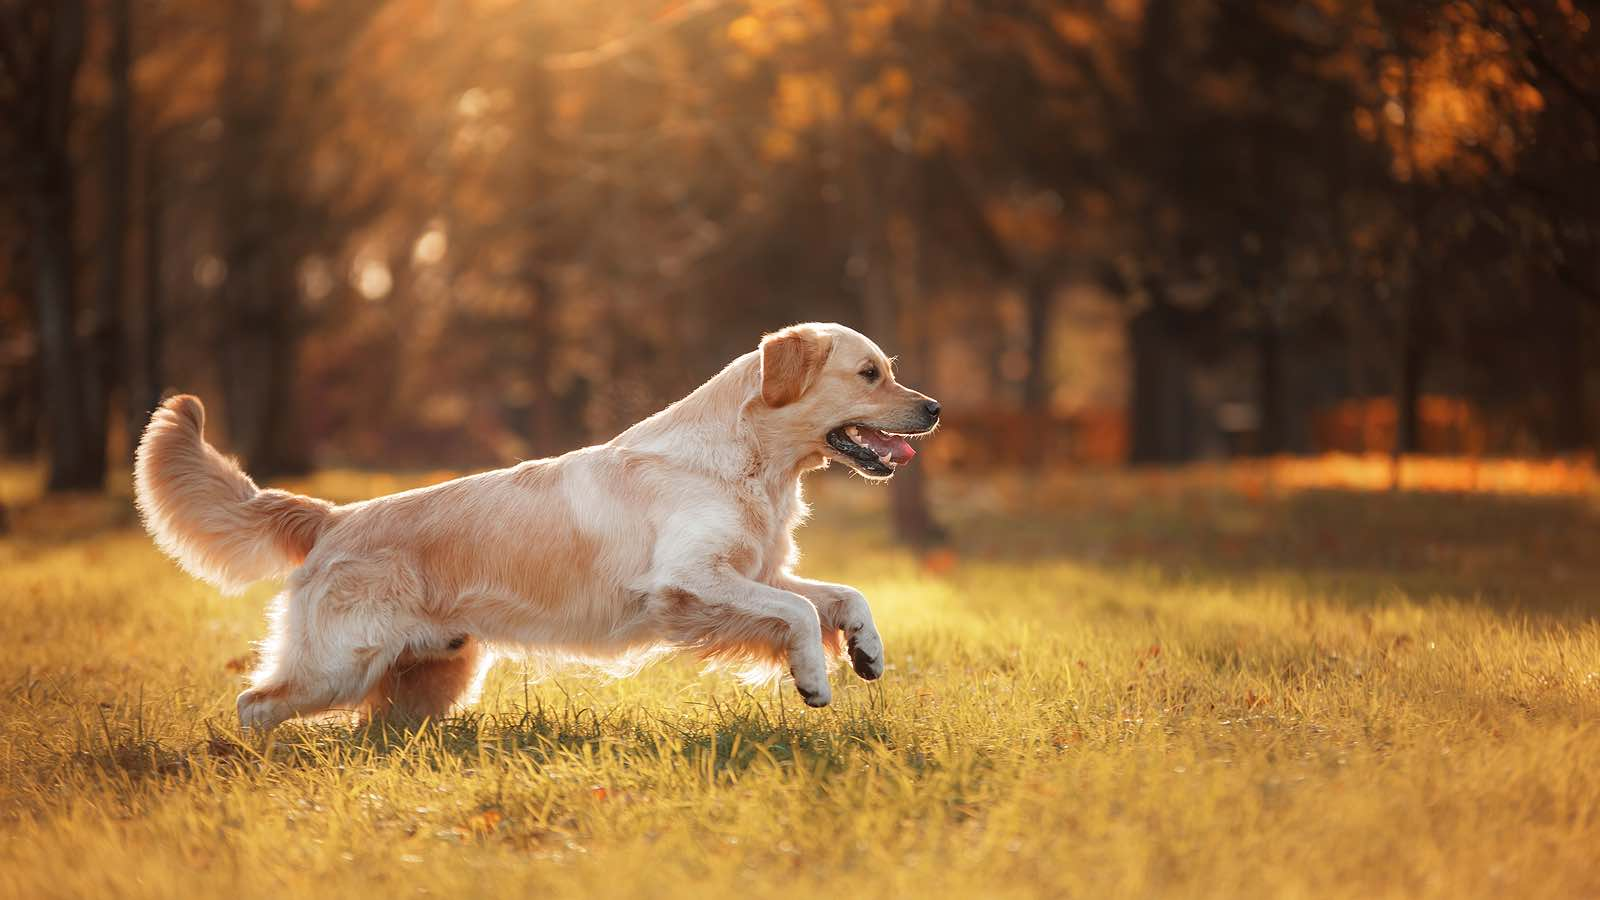 Managing Disorders of the Canine Hind Limb : Use the latest evidence-based interventions when treating hind limb lameness in dogs